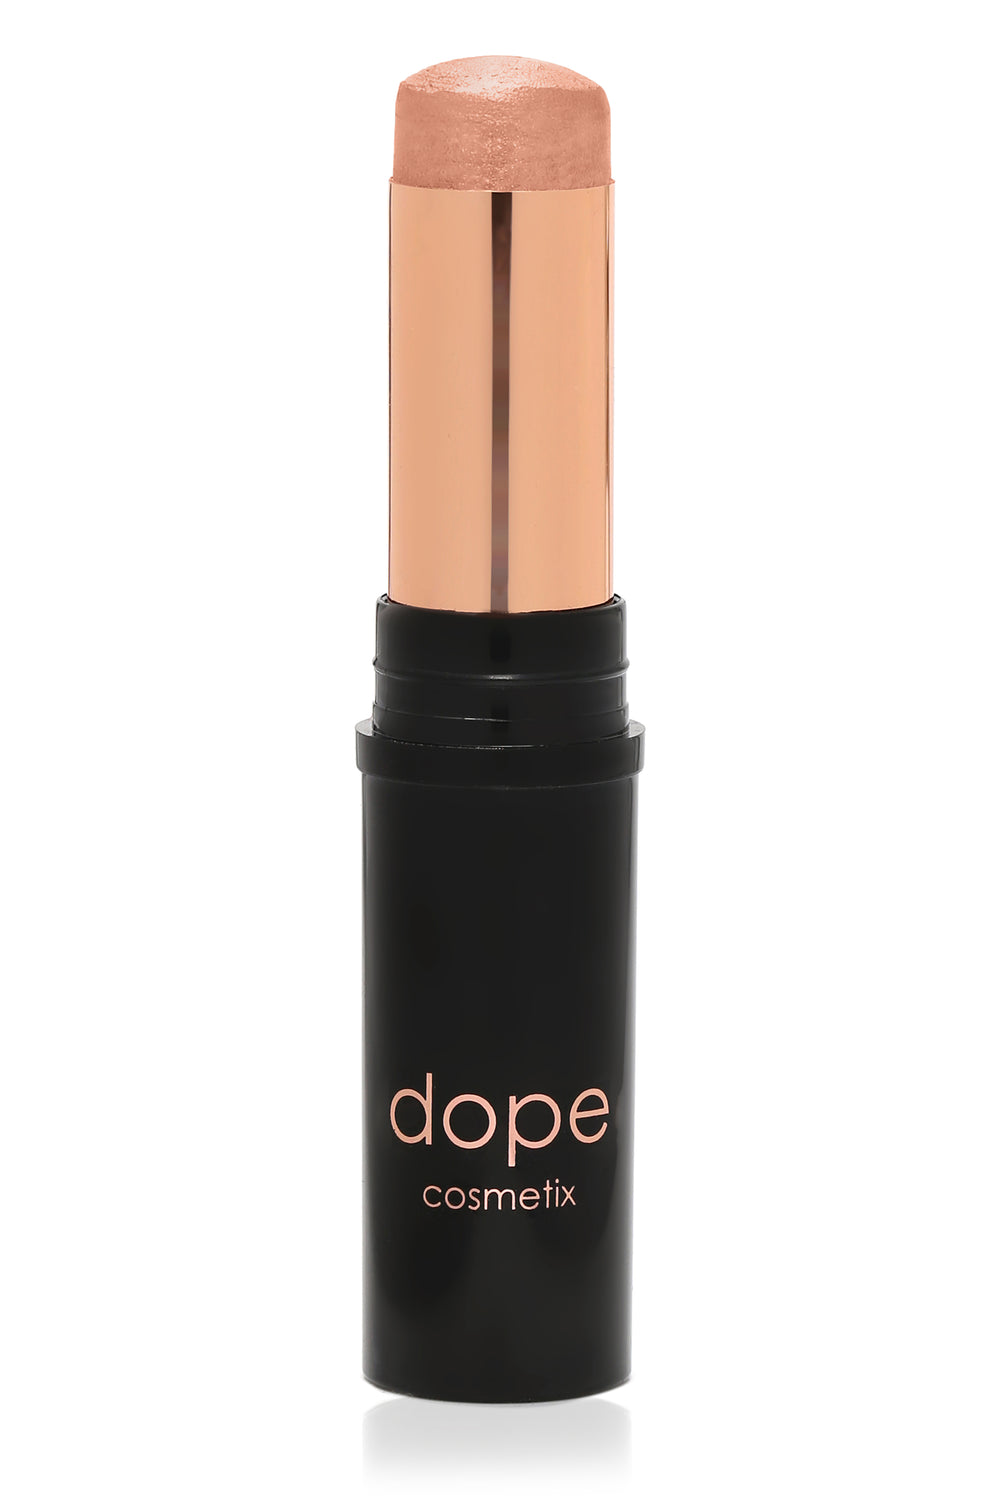 Dope Cosmetix Cream Highlighter Stick - Blaze Up